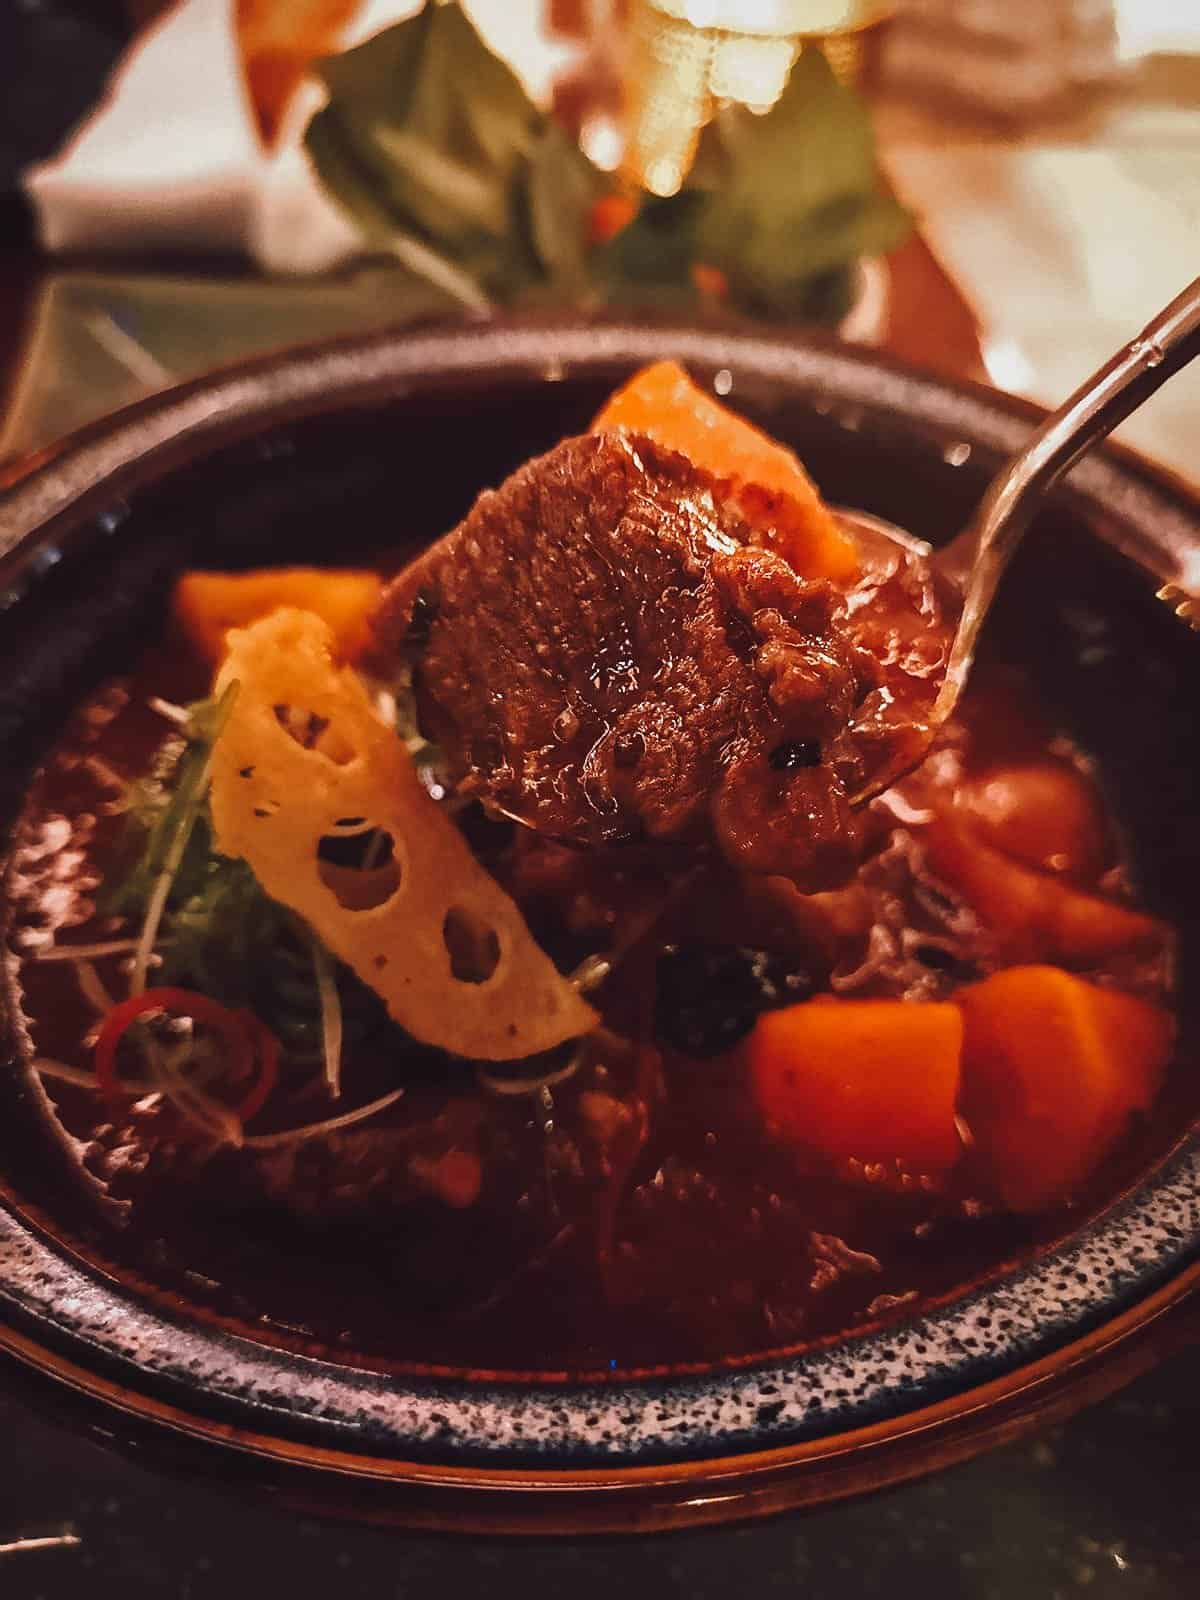 Braised wagyu beef cheek at Vietnam House Restaurant